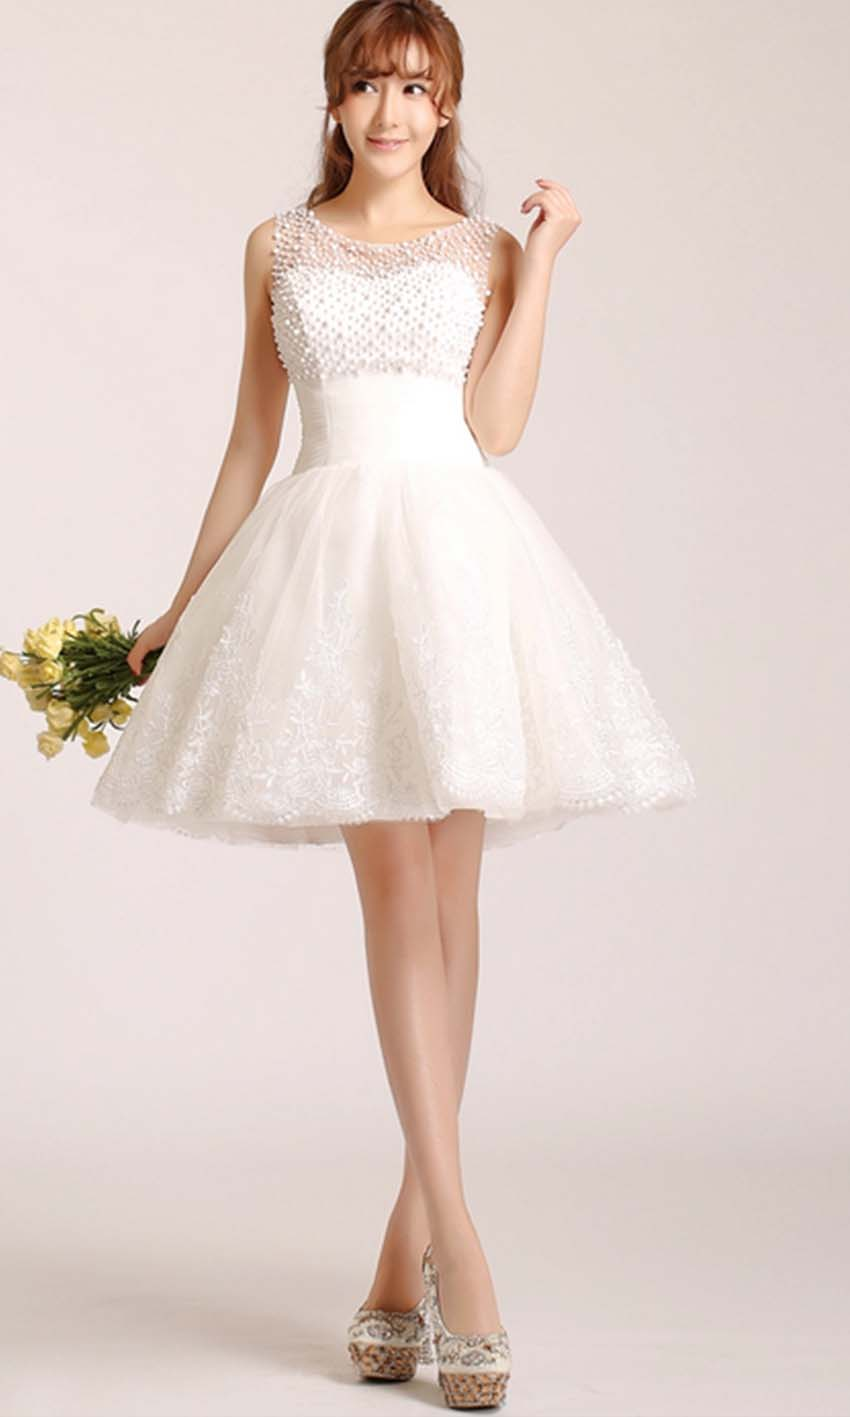 Cute white short lace prom dress with pearl mesh top for Cute short white wedding dresses